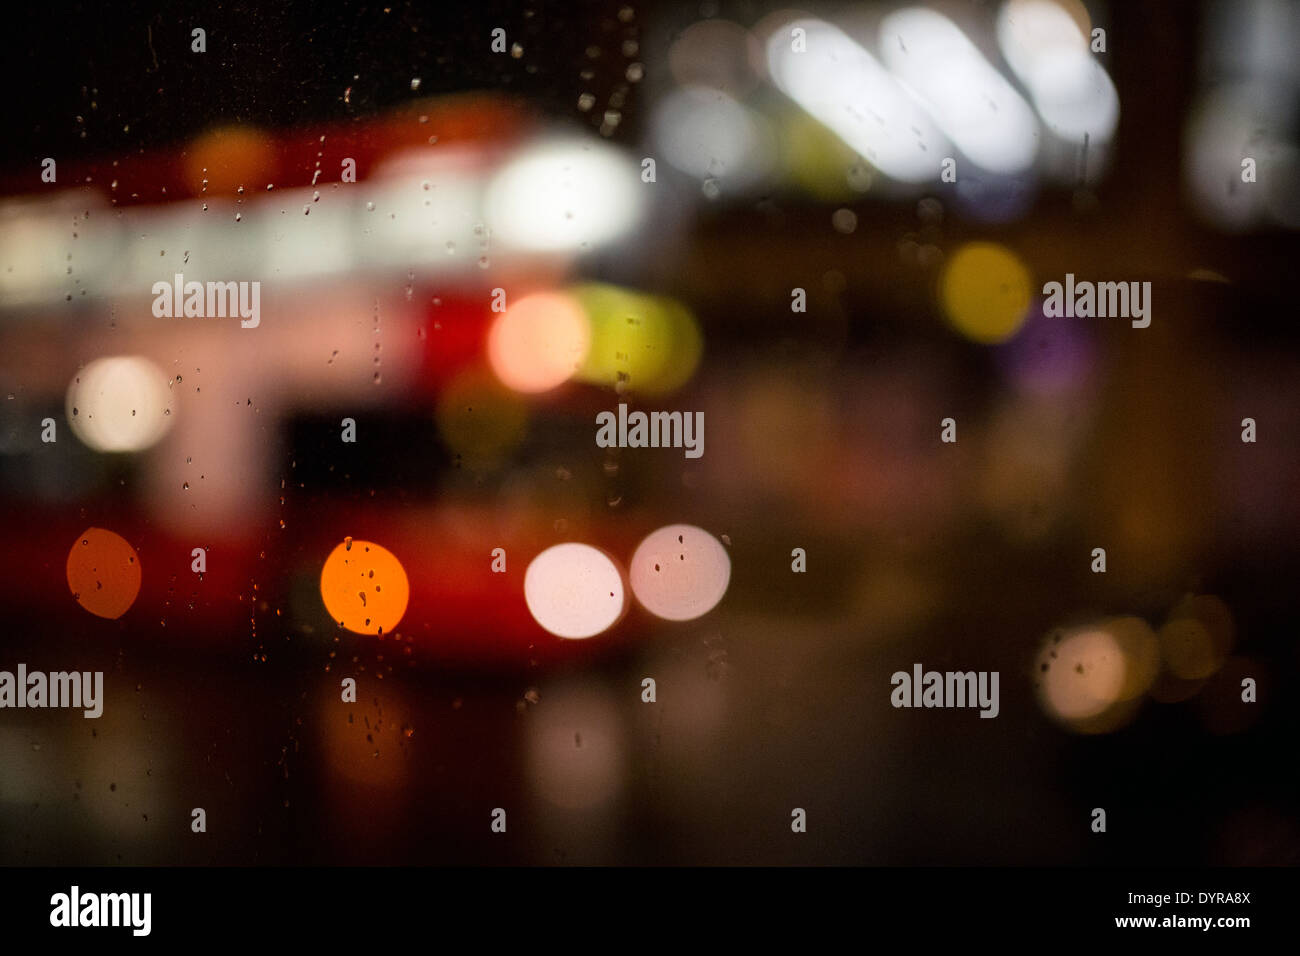 London rainy weather red bus window night lights - Stock Image